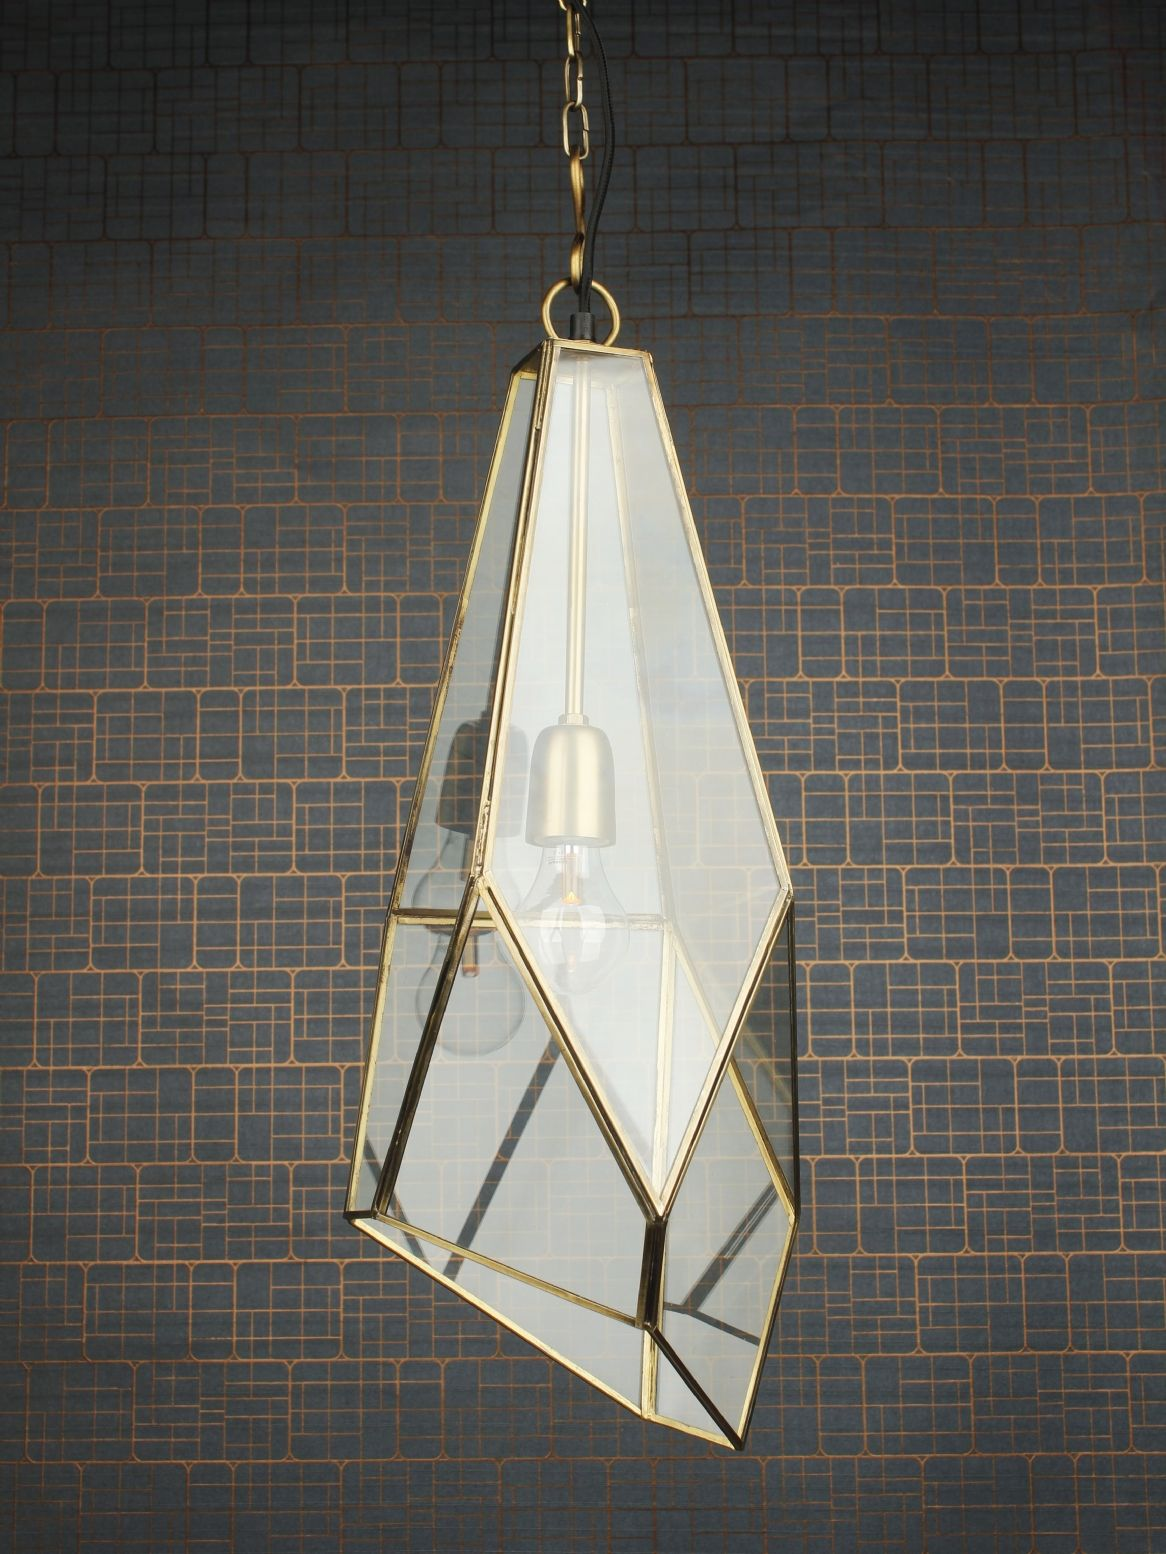 Details about Satin Brass And Brushed Nickel Leaded Stained Glass ChandelierPendant